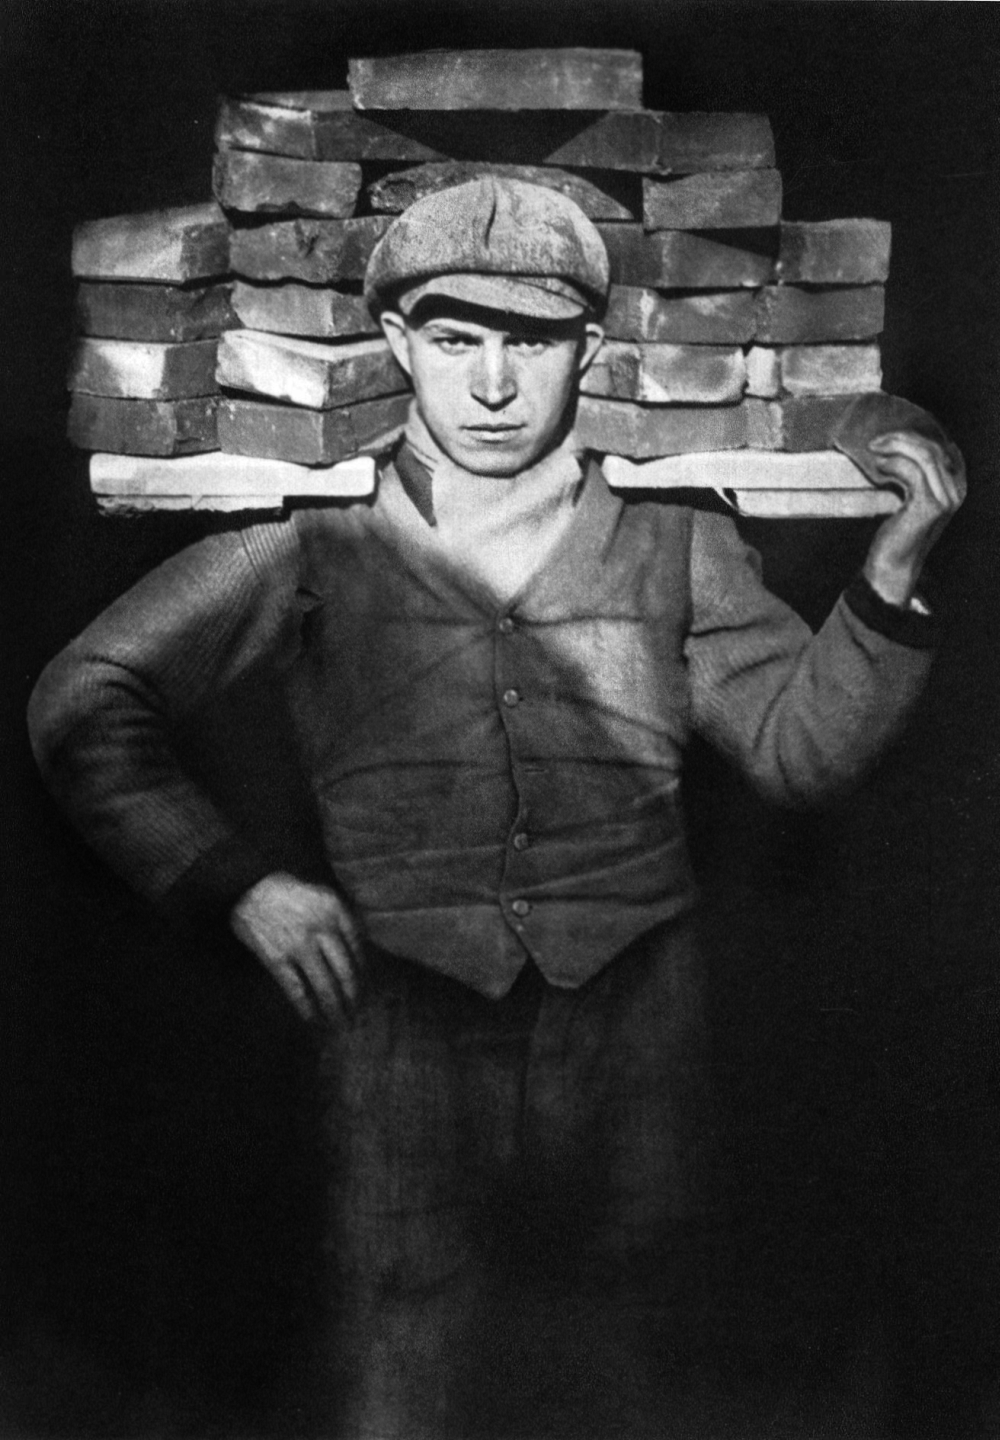 August Sander: Bricklayer, 1928